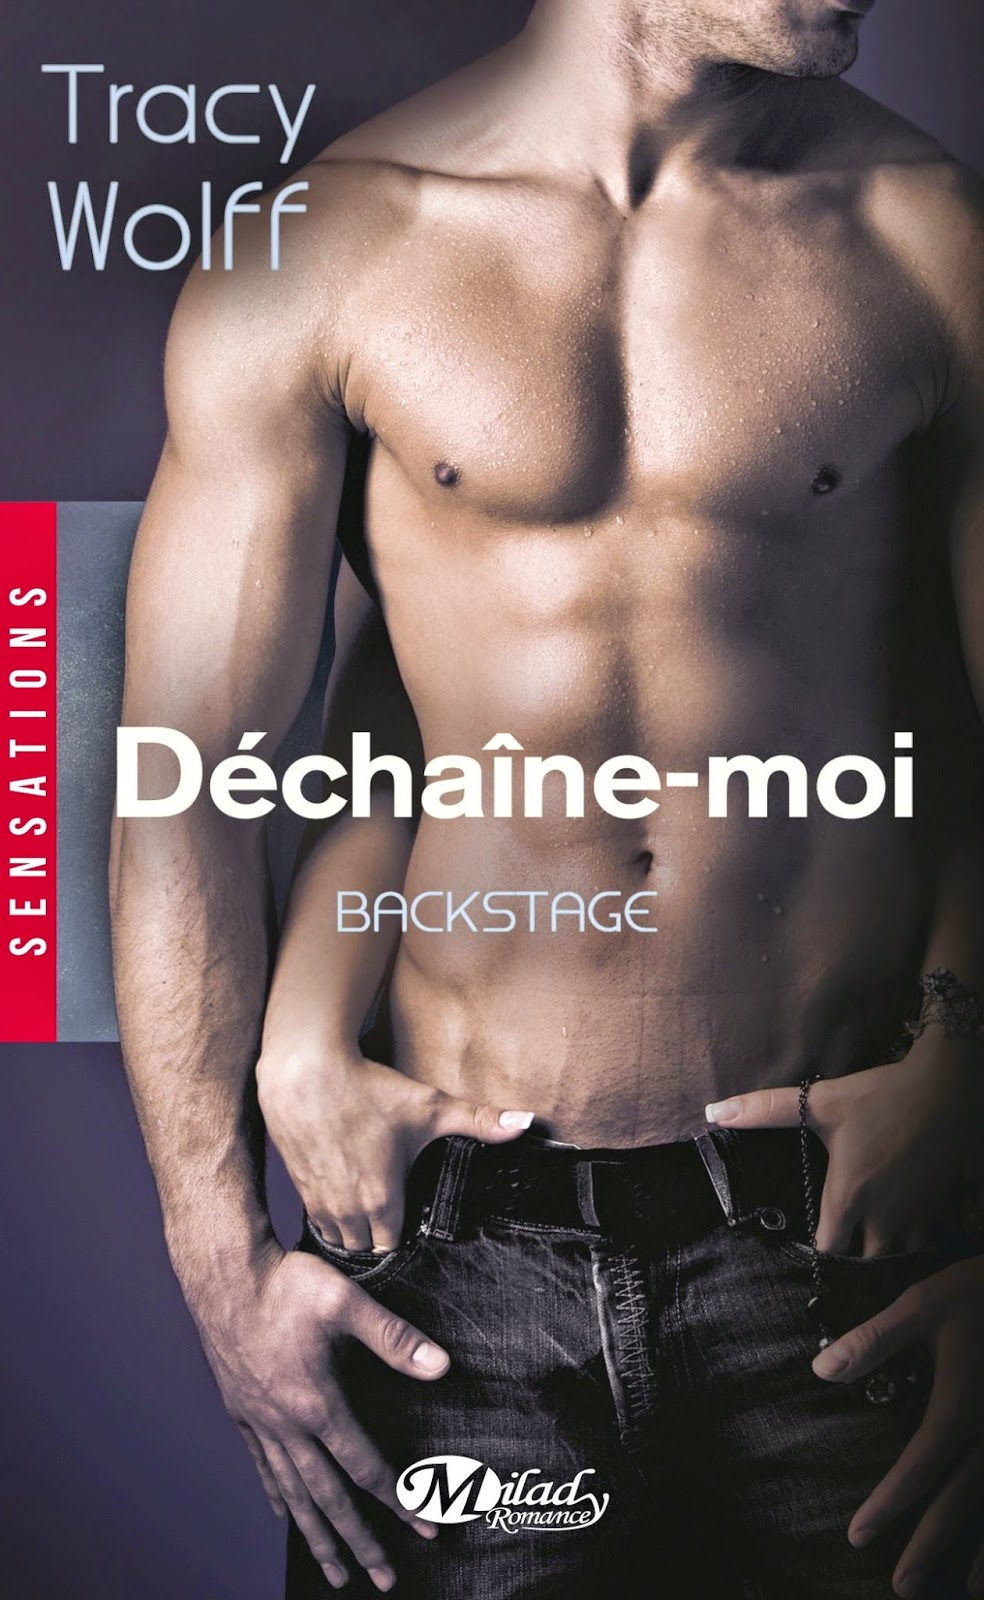 http://lachroniquedespassions.blogspot.fr/2014/11/backstage-tome-1-dechaine-moi-tracy.html